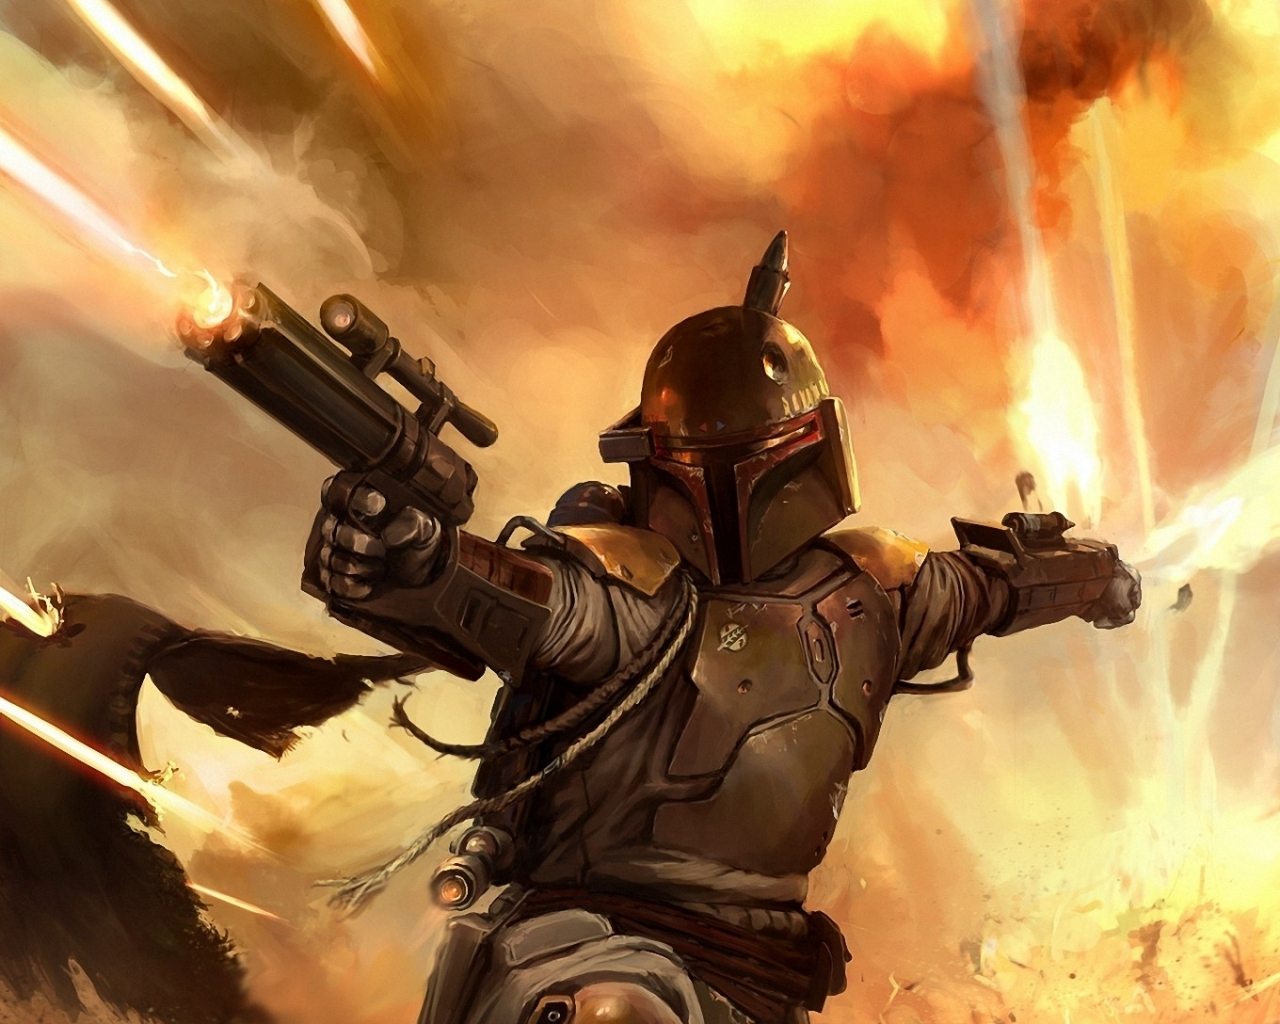 Star Wars Boda Fett Wallpapers